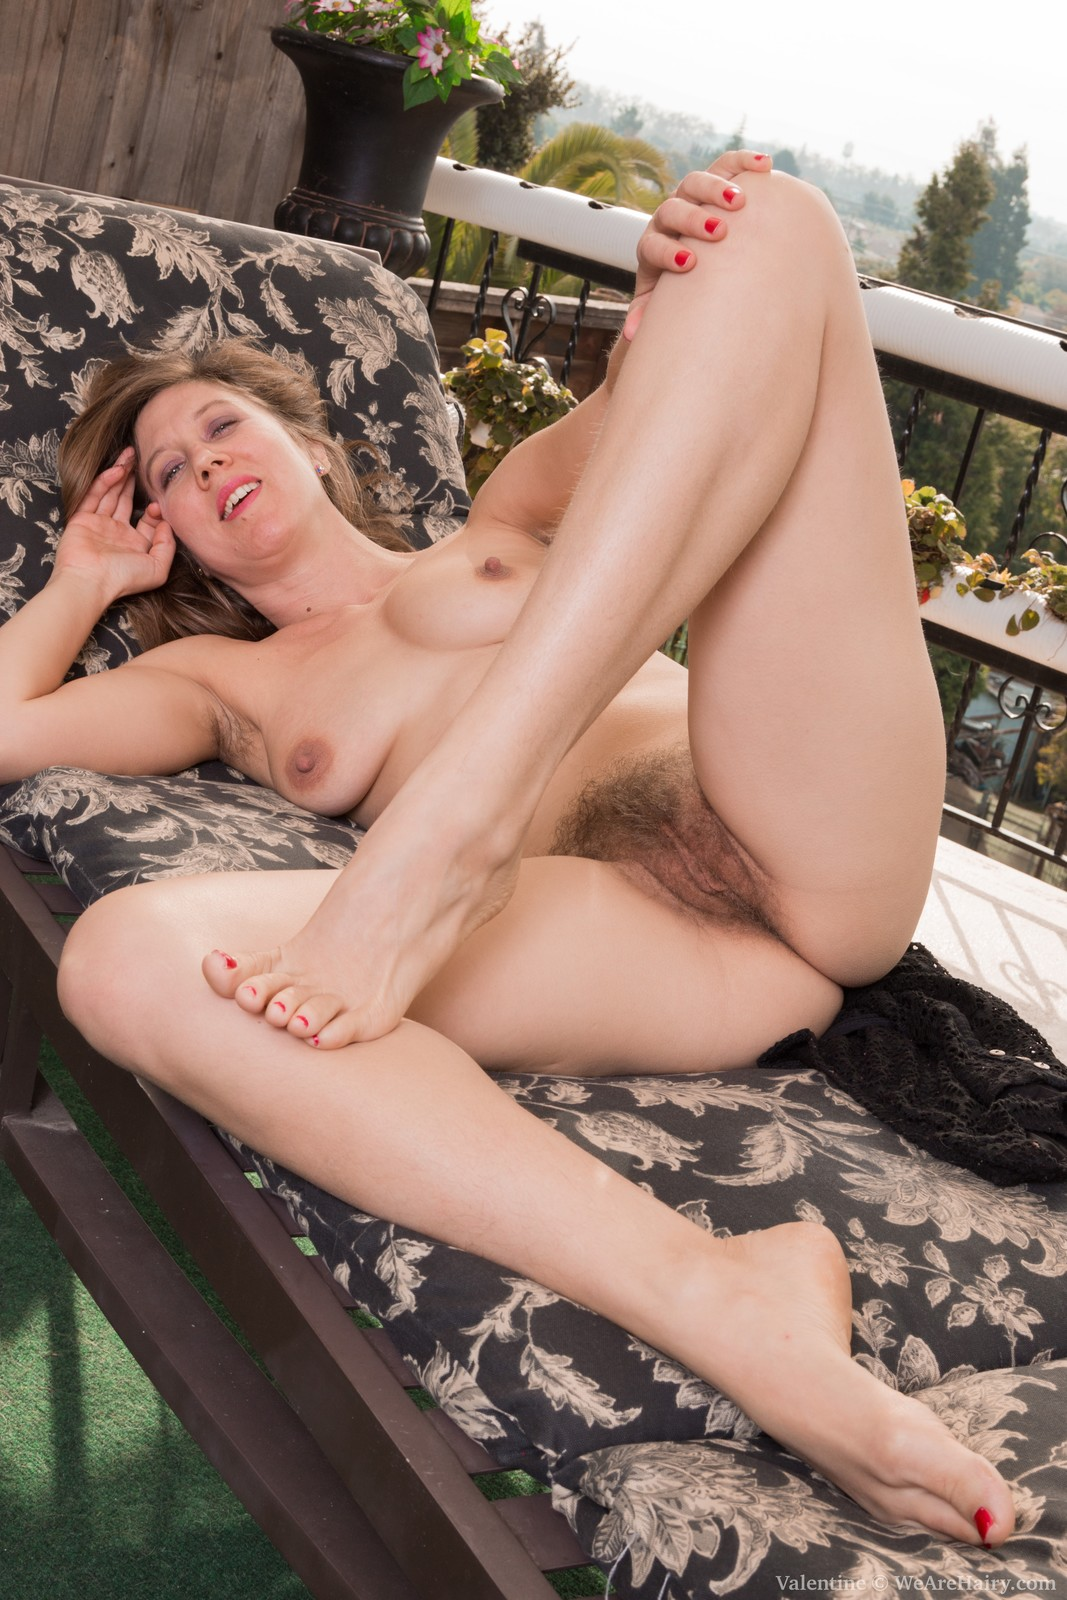 valentine-is-laying-on-her-lounge-chair-on-her-balcony-and-stroking-her-hairy-pits-and-hairy-bush.-she-takes-it-all-off-and-strokes-her-pink-pussy-lips-and-bush.-she-smiles-and-enjoys-being-naked-for-us.13.jpg